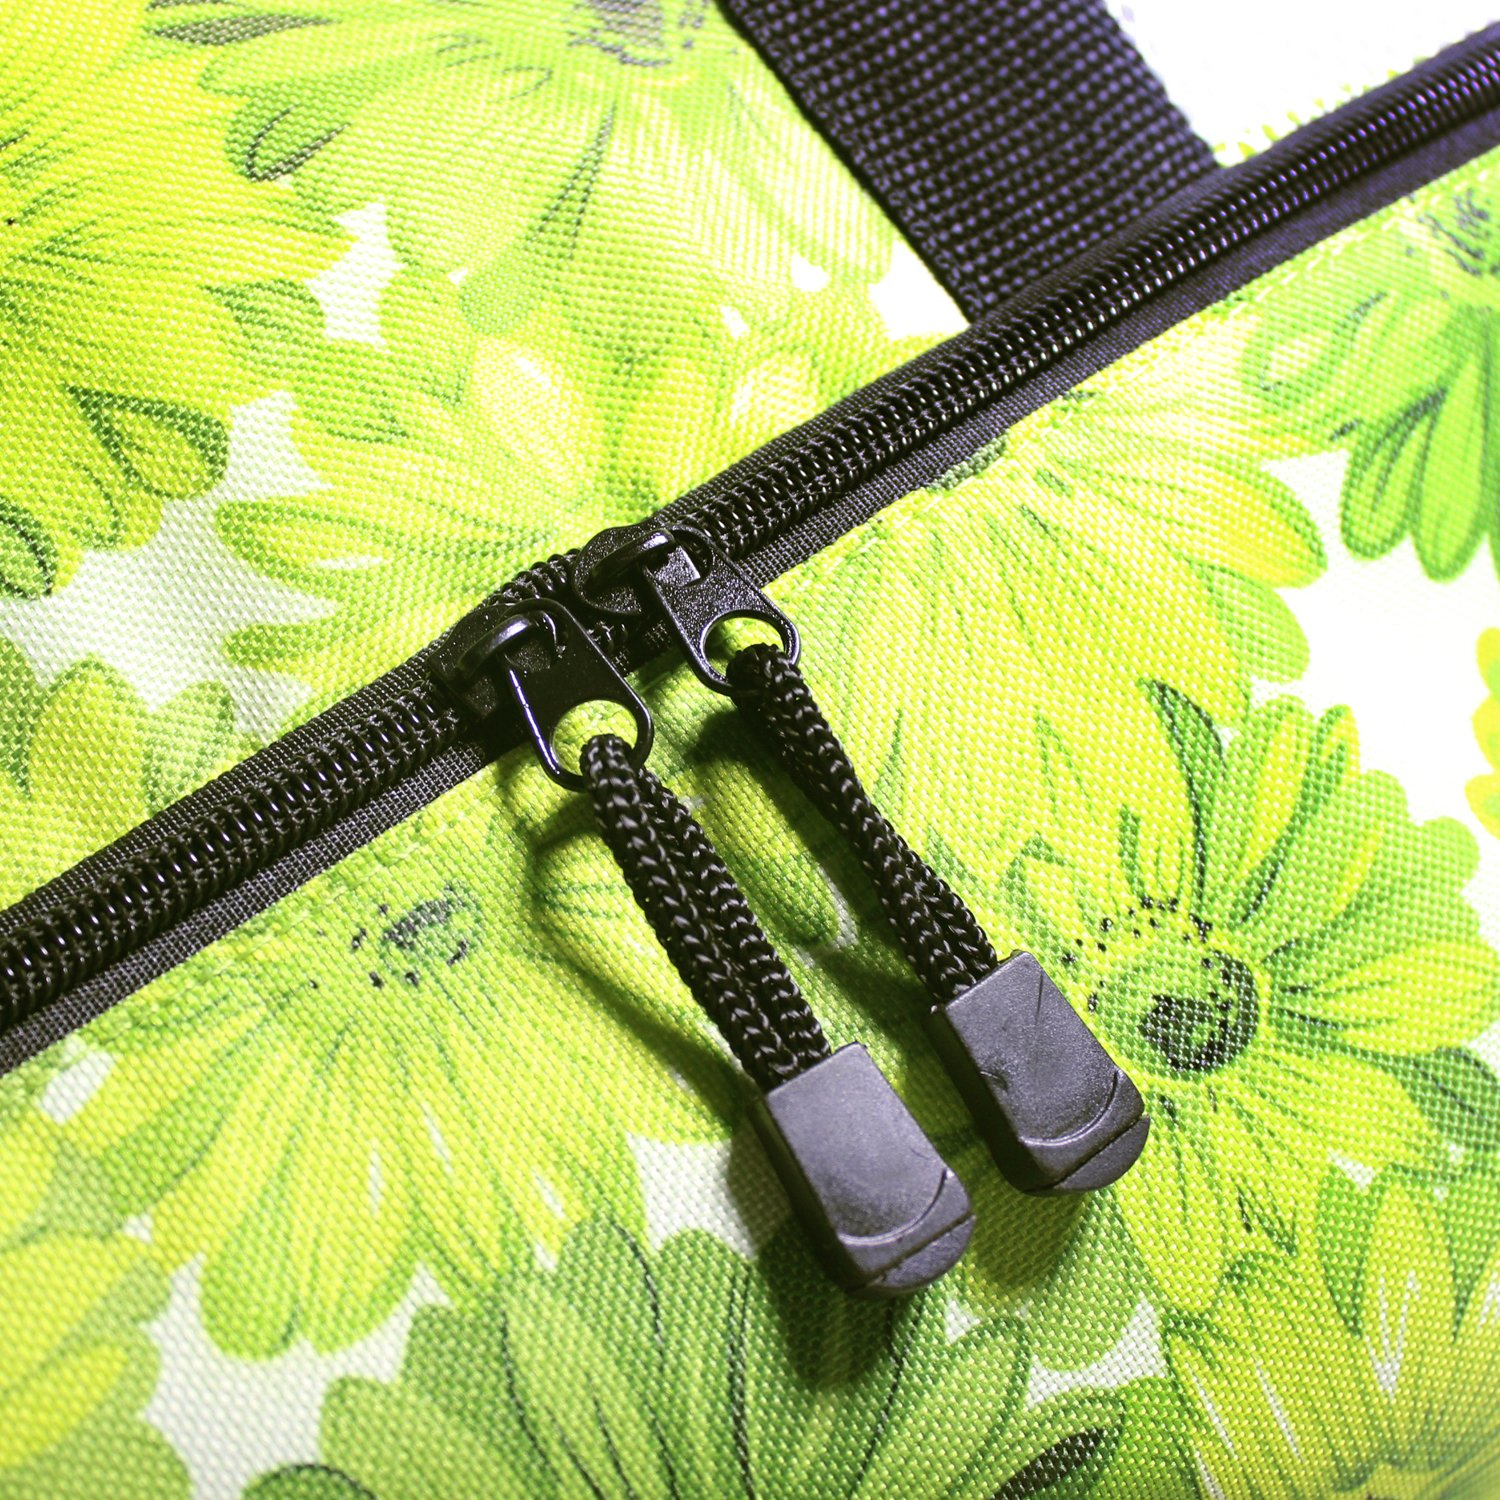 Rotanet Mesh Beach Tote Bag-Zipper Top with Insulated Picnic Cooler Extra Large (Green Flower) by ROTANET (Image #5)